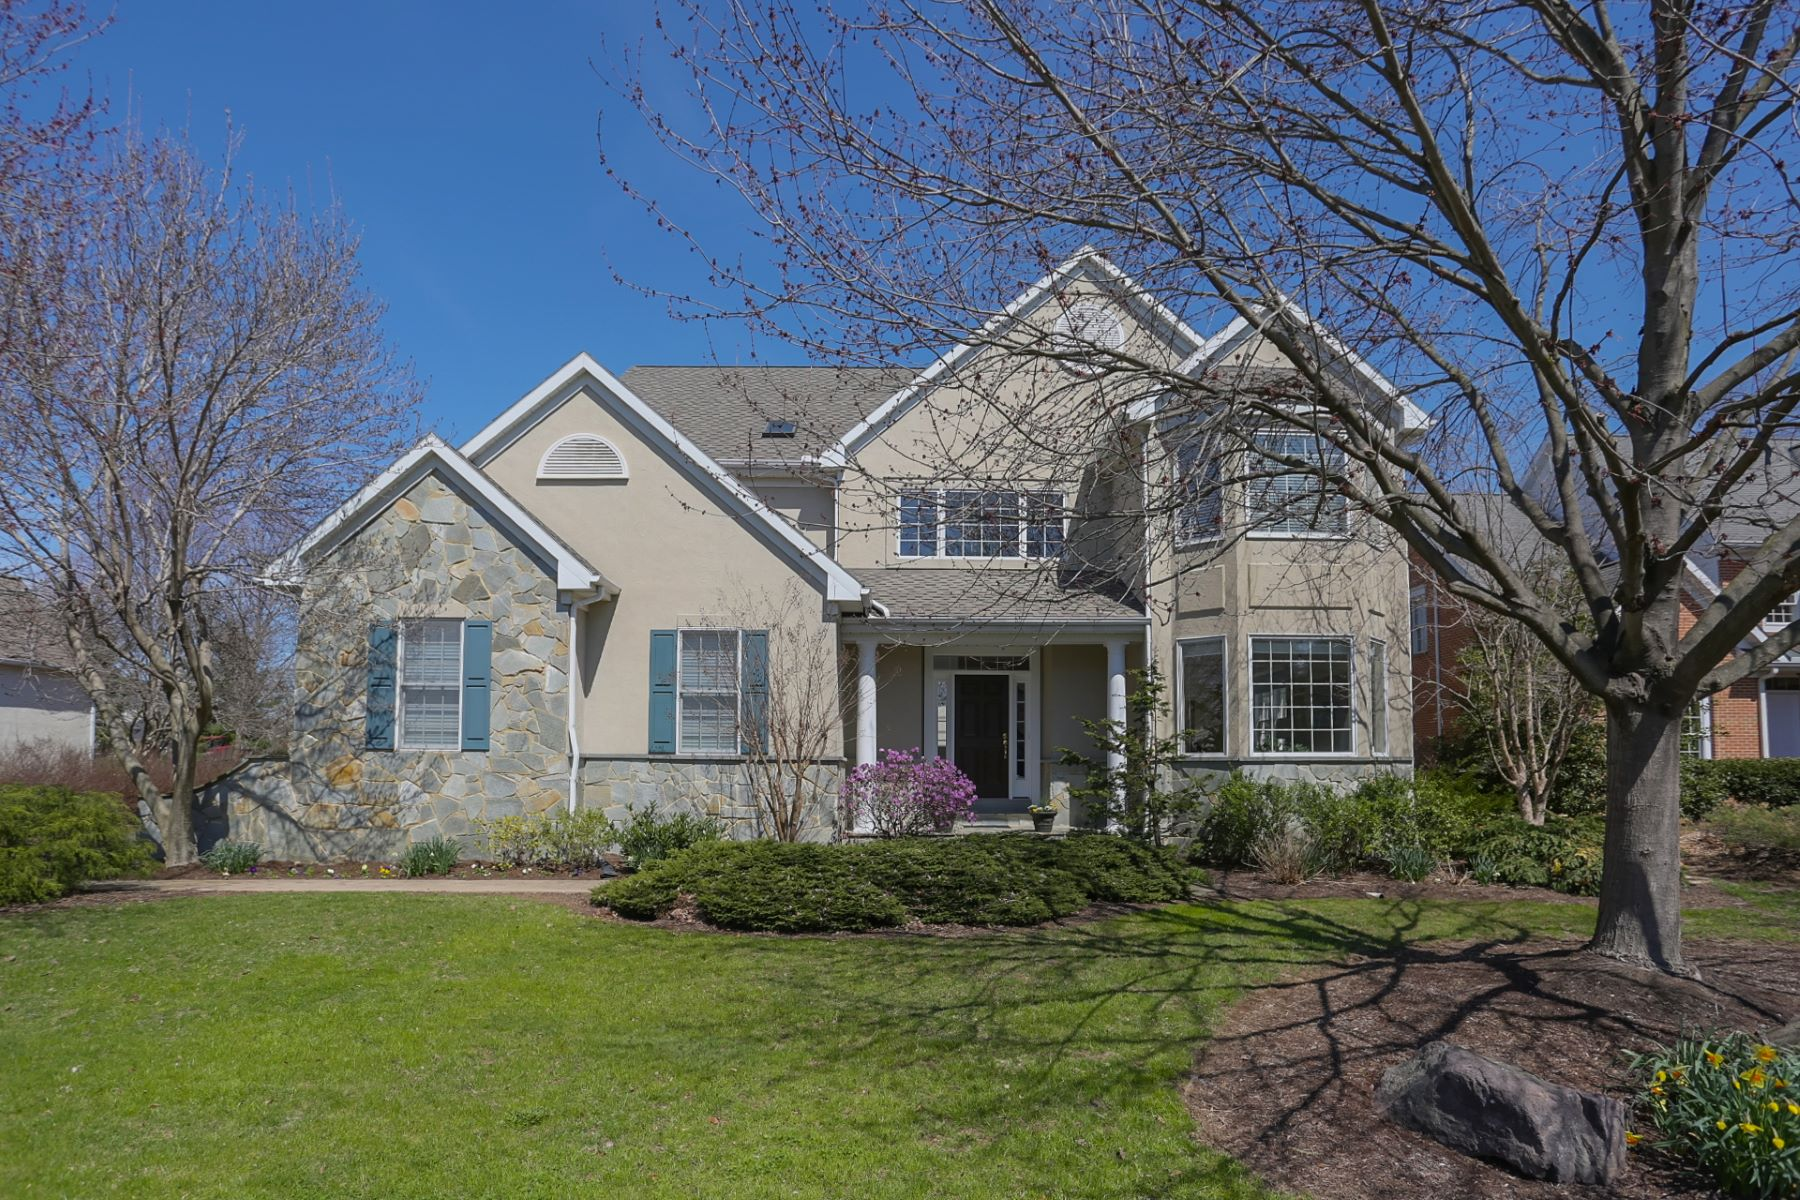 Single Family Home for Sale at 821 Woodfield Drive Lititz, Pennsylvania, 17543 United States